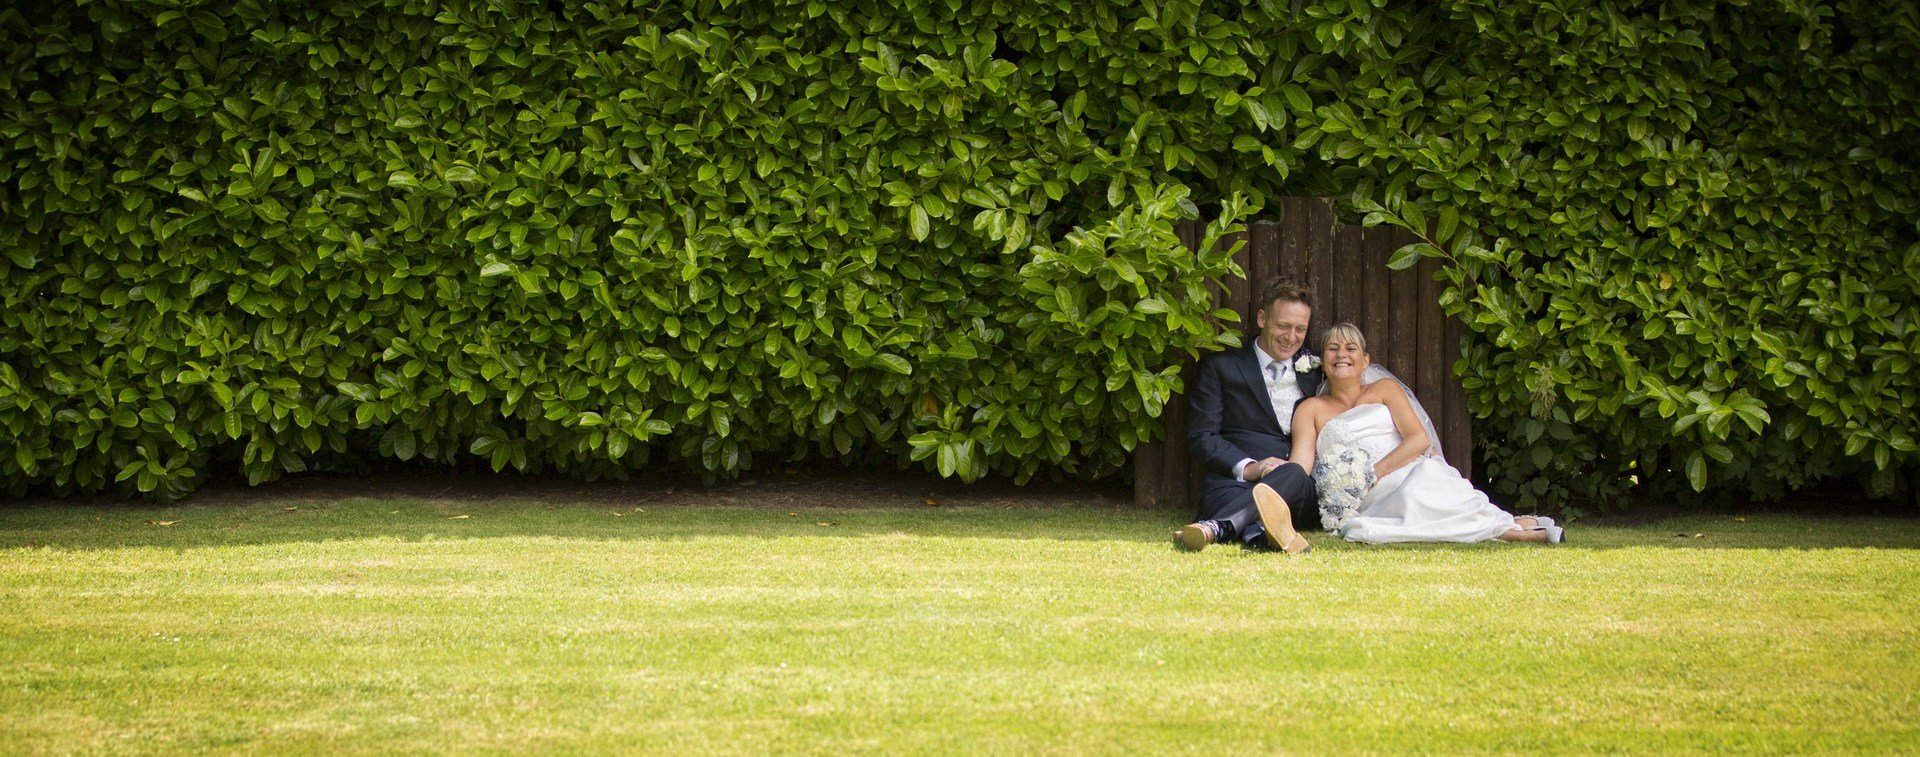 Wedding Photography in County Durham